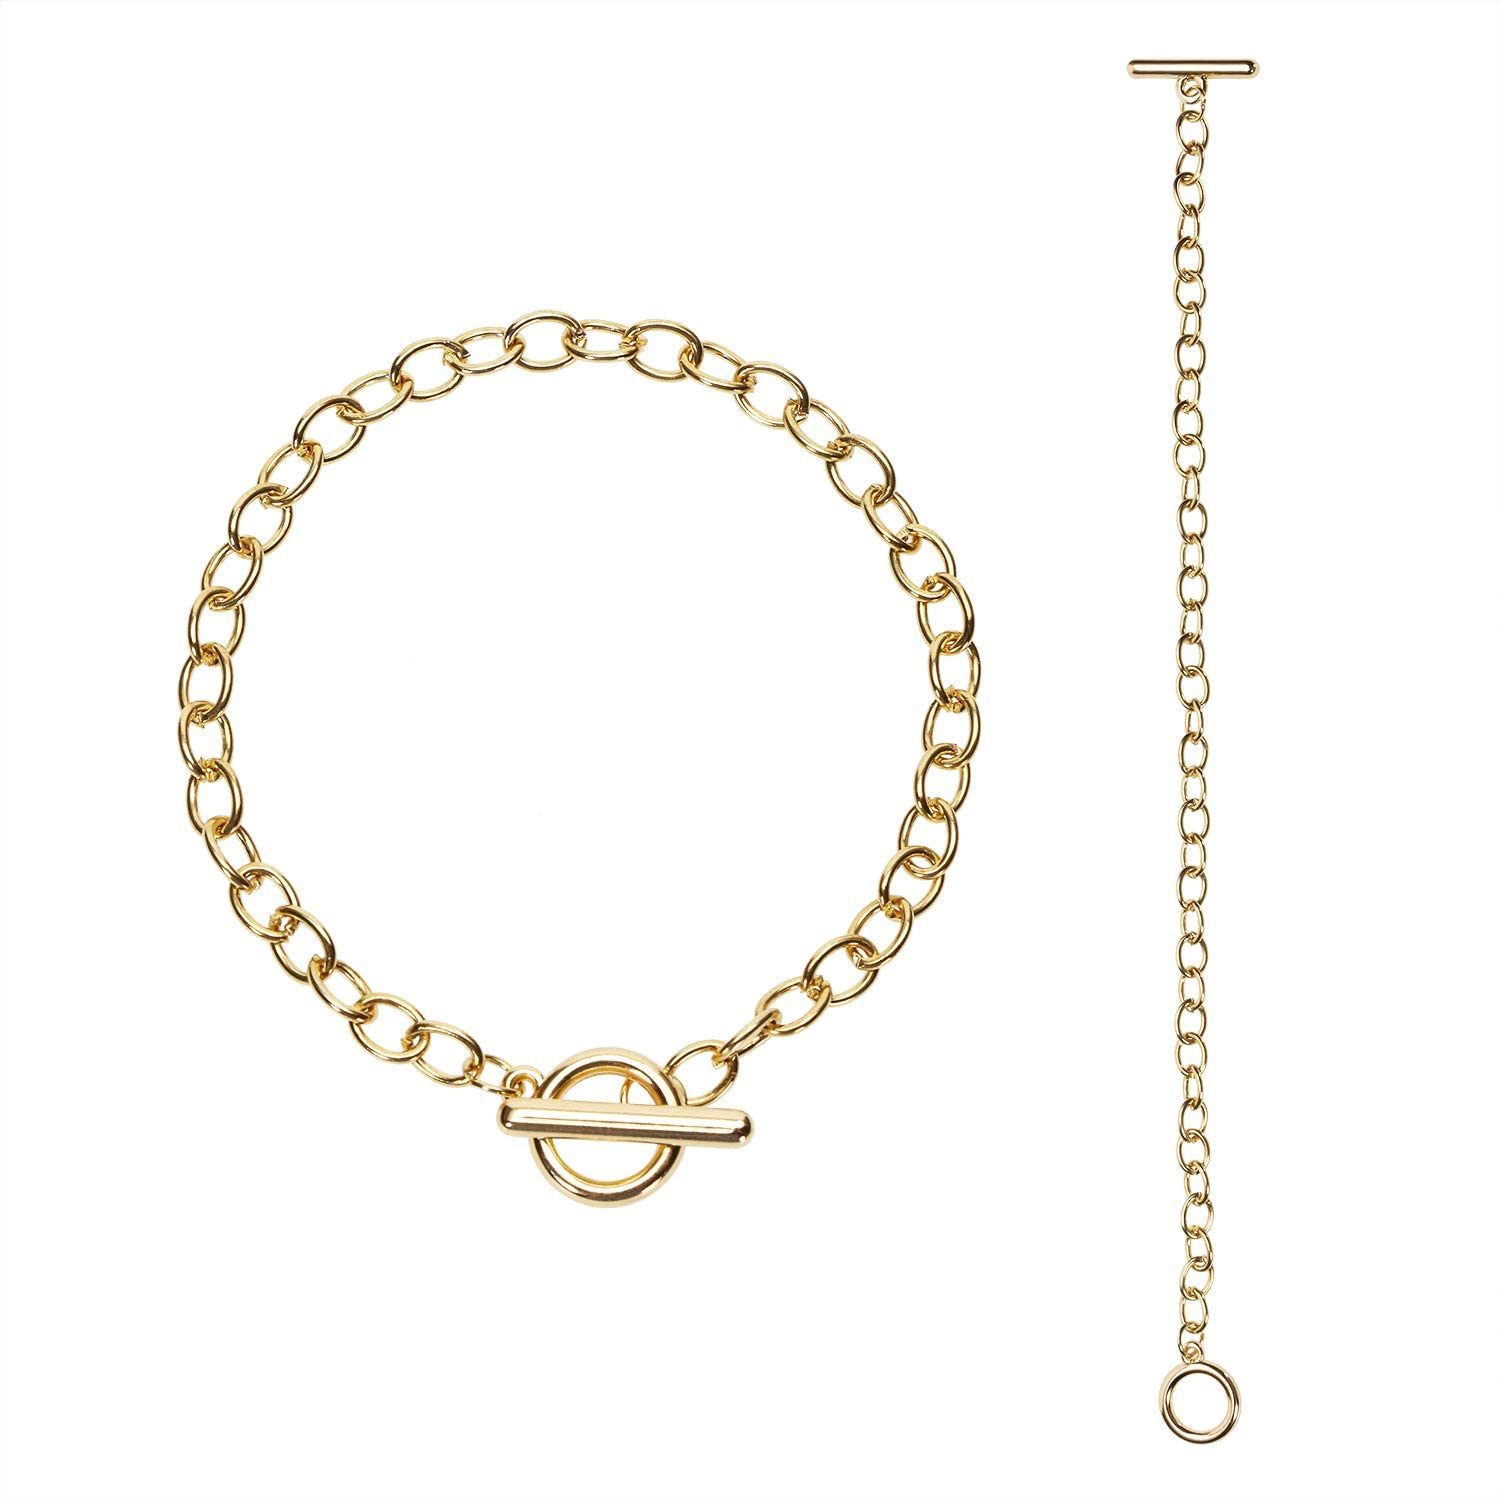 Penta Angel Toggle Clasp Chain Bracelets Metal Alloy Charms Link Chain with OT Jewelry Making Clasp for Women Girls Birthday Gift, 2PCS (Gold)